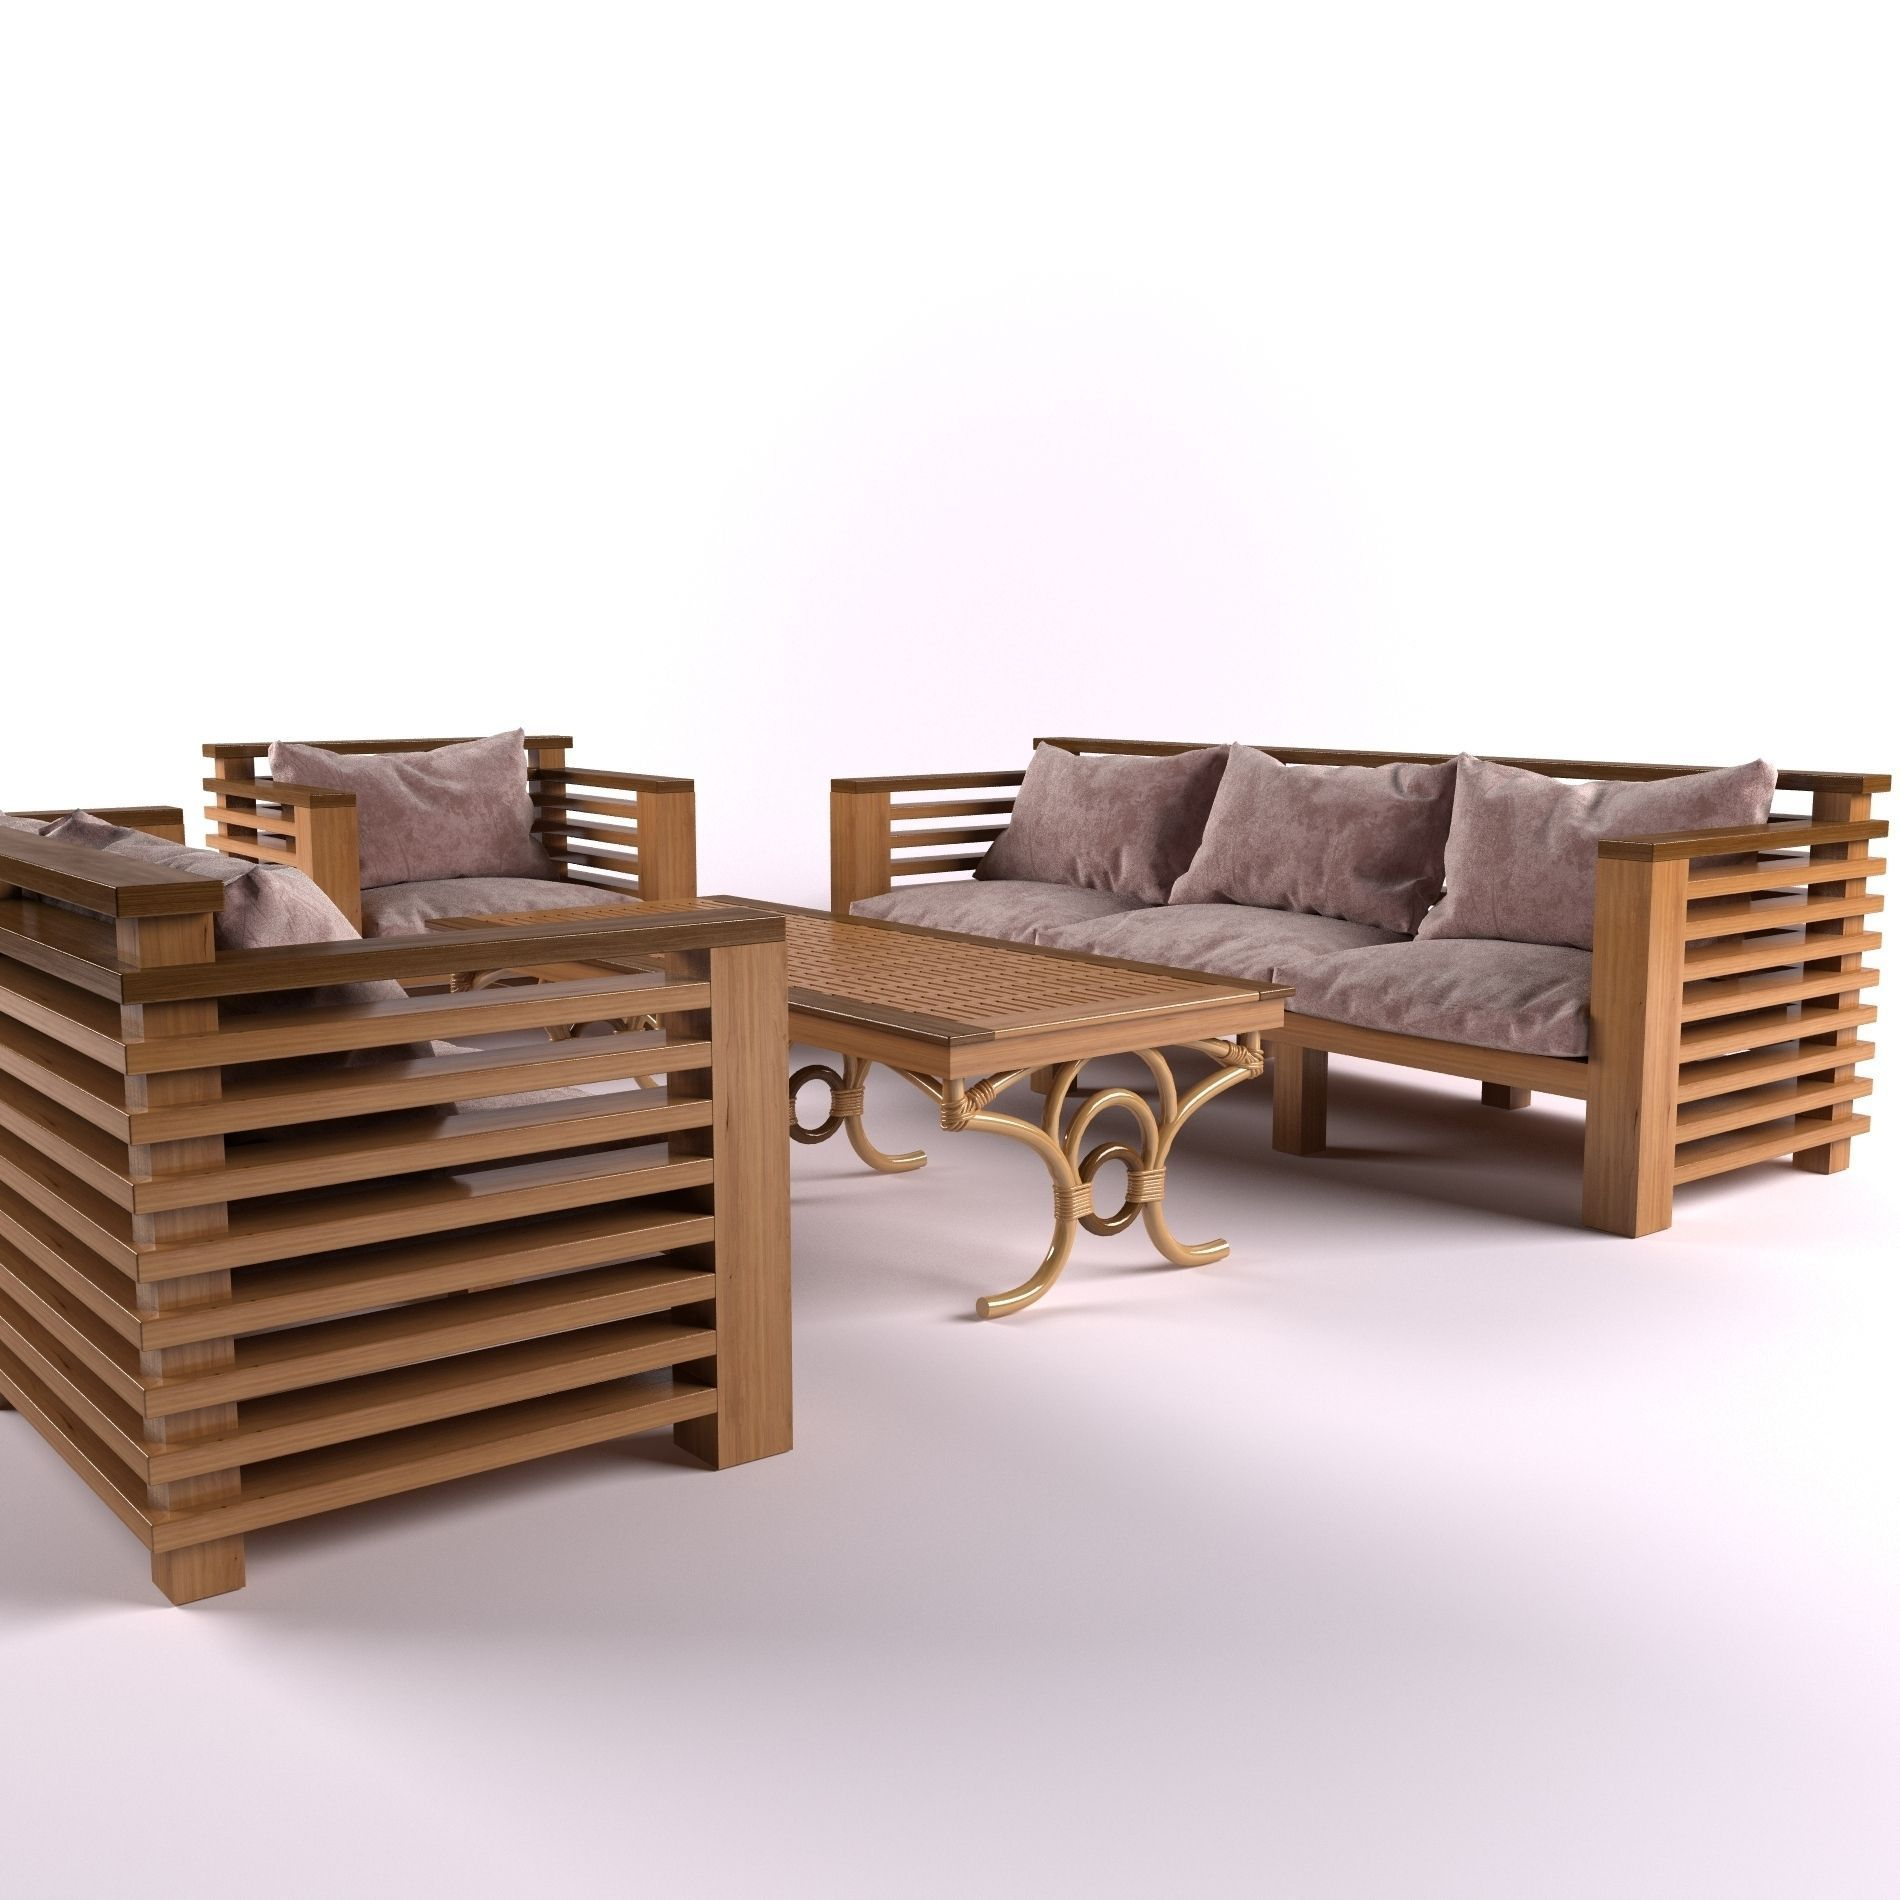 garden furniture 3d model max obj mtl 4 - Garden Furniture 3d Model